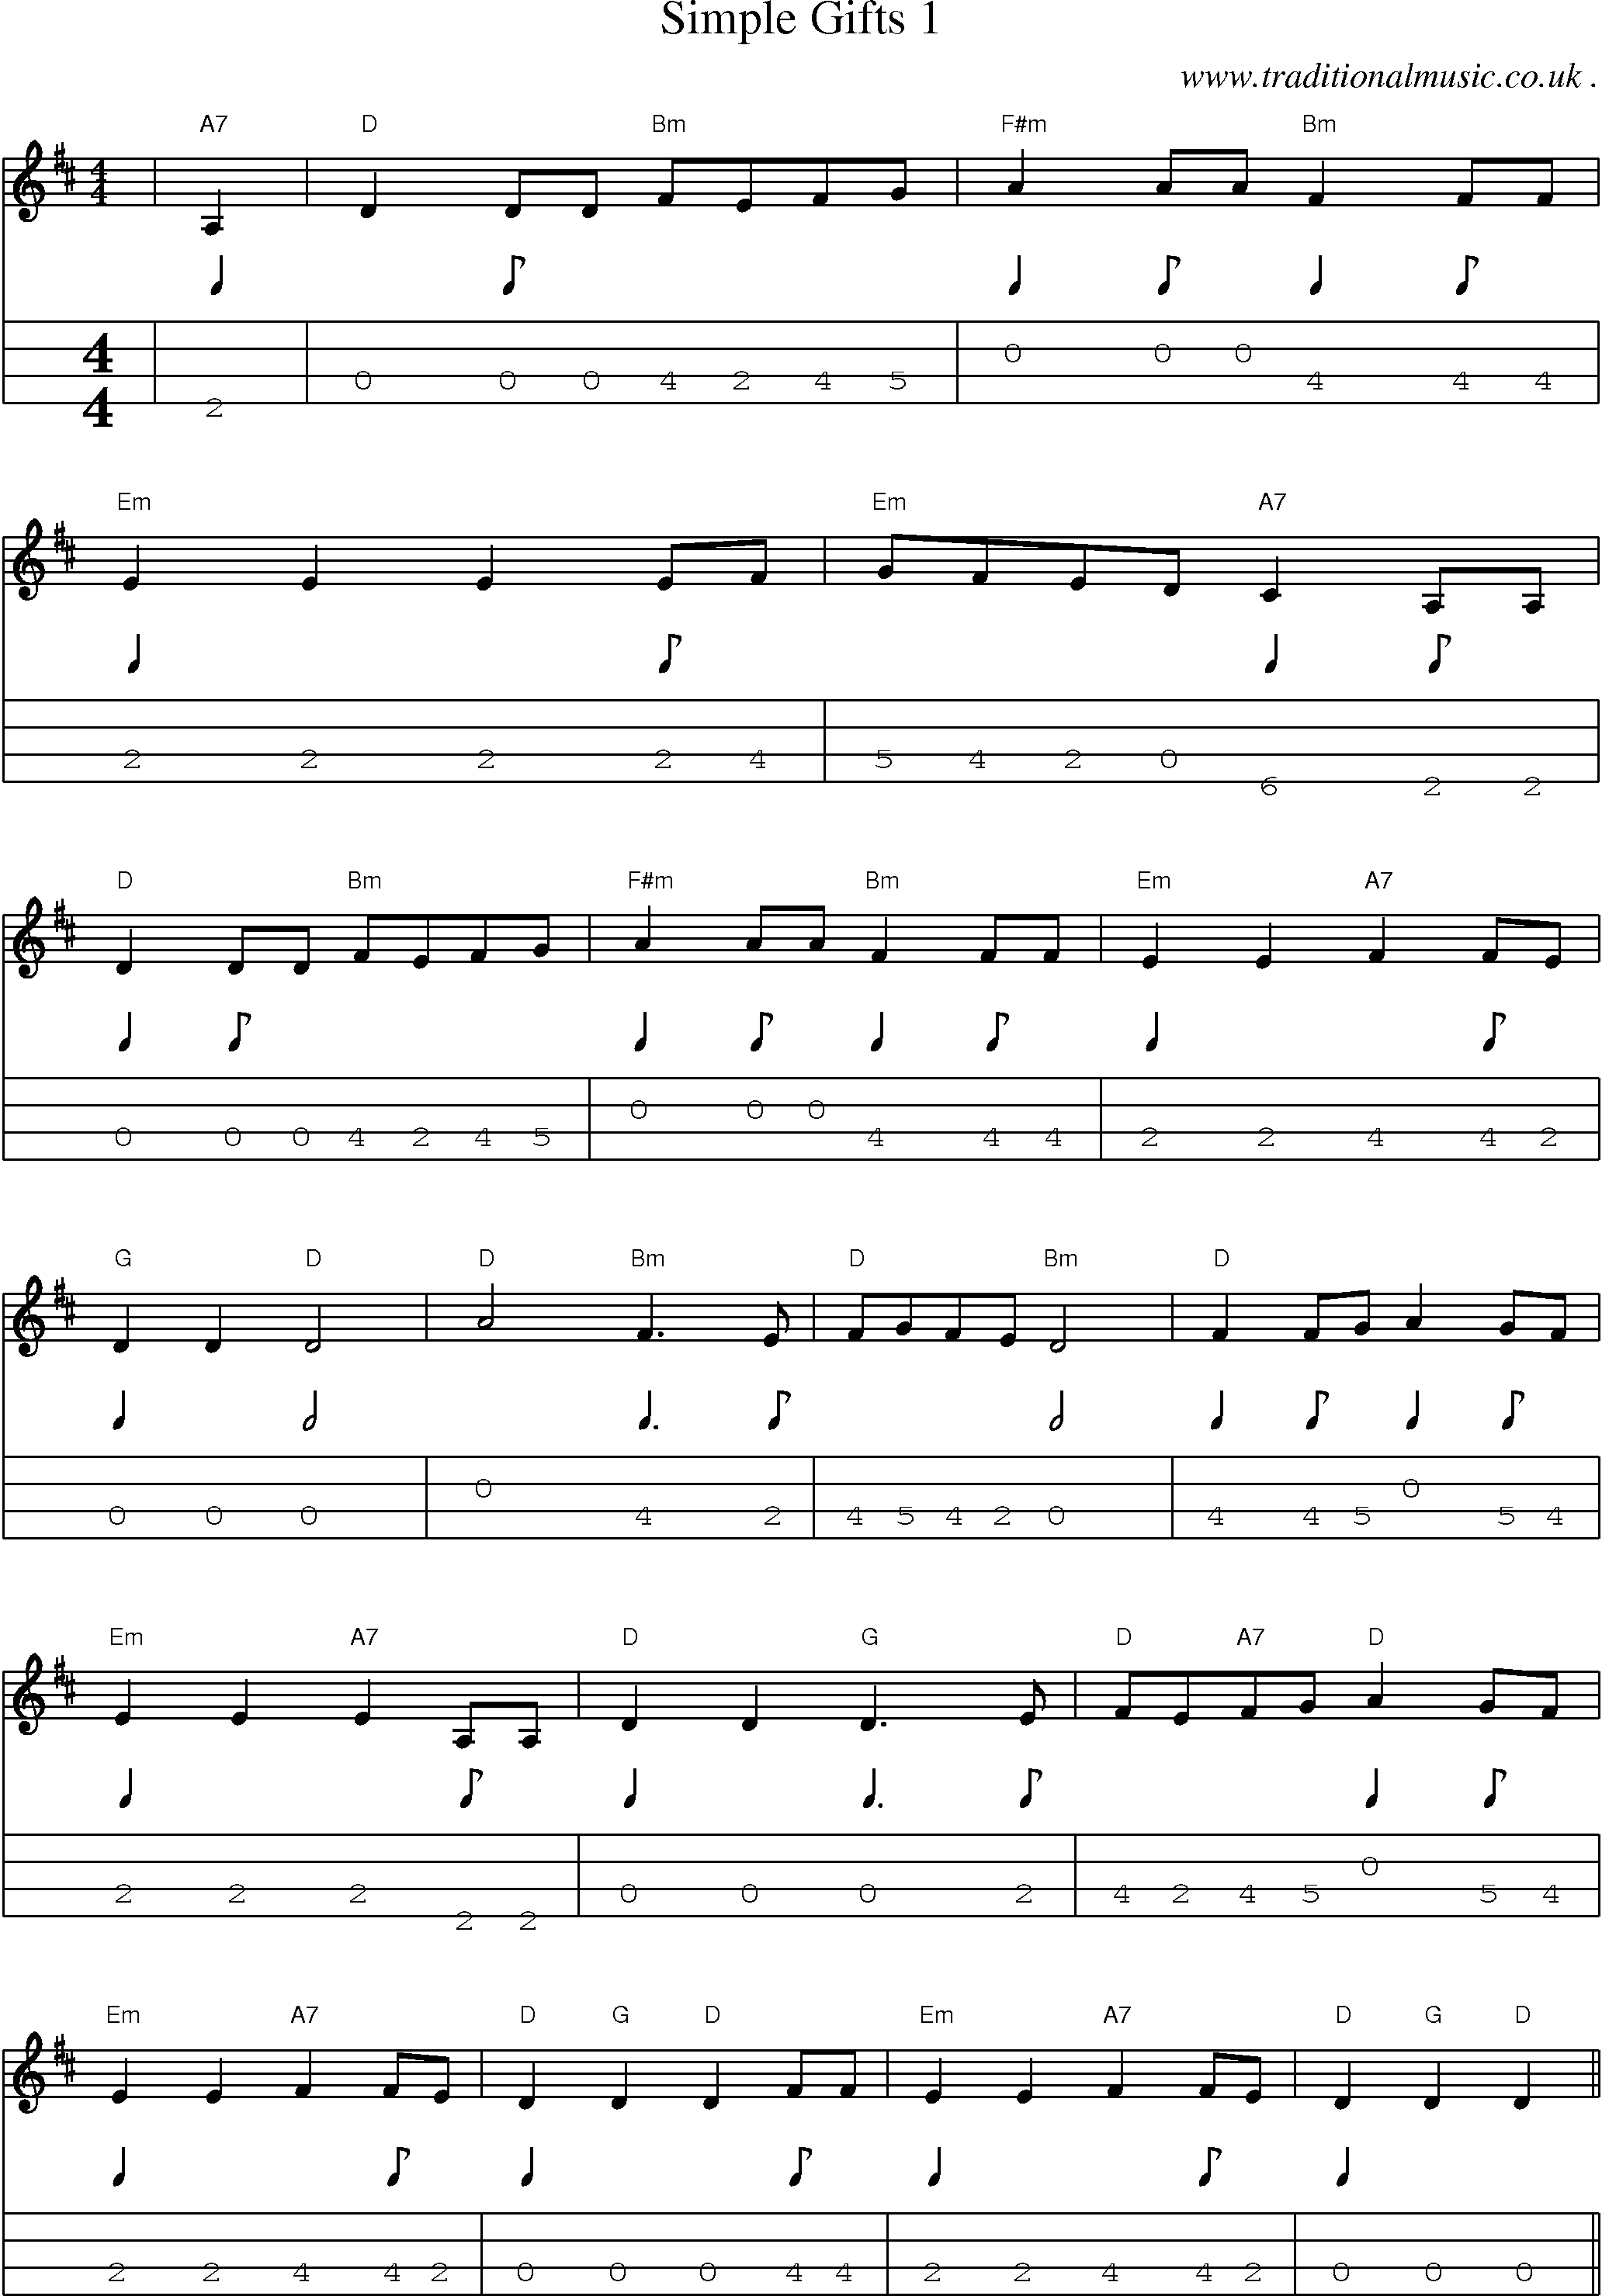 Music Score and Mandolin Tabs for Simple Gifts 1 | sheet music in